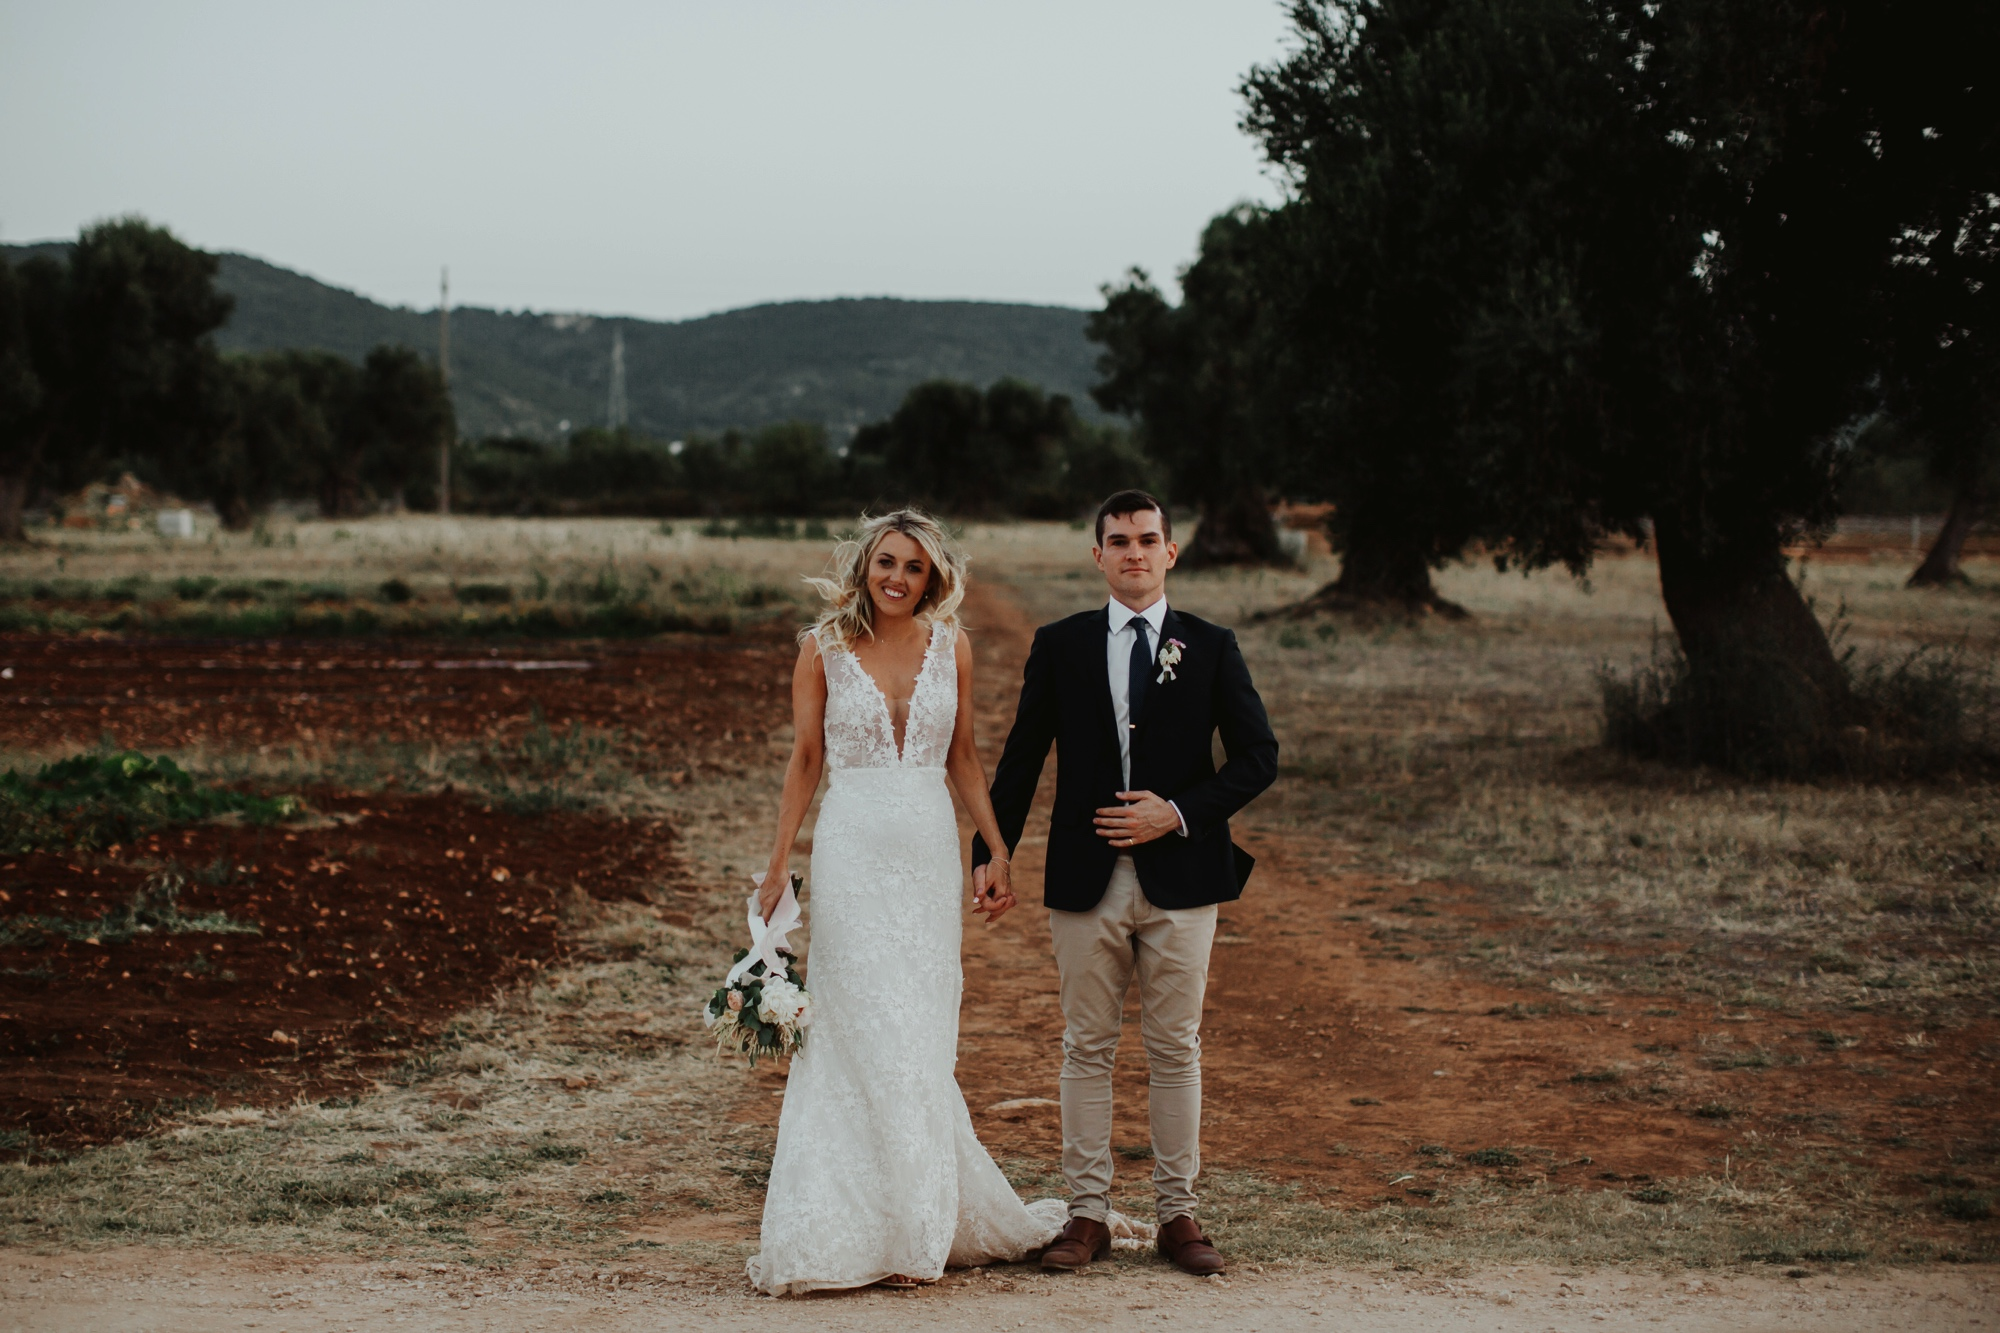 0000000066_Rob and Lucy-754_Weddings_Destination_Italy_got_Just_Engaged.jpg